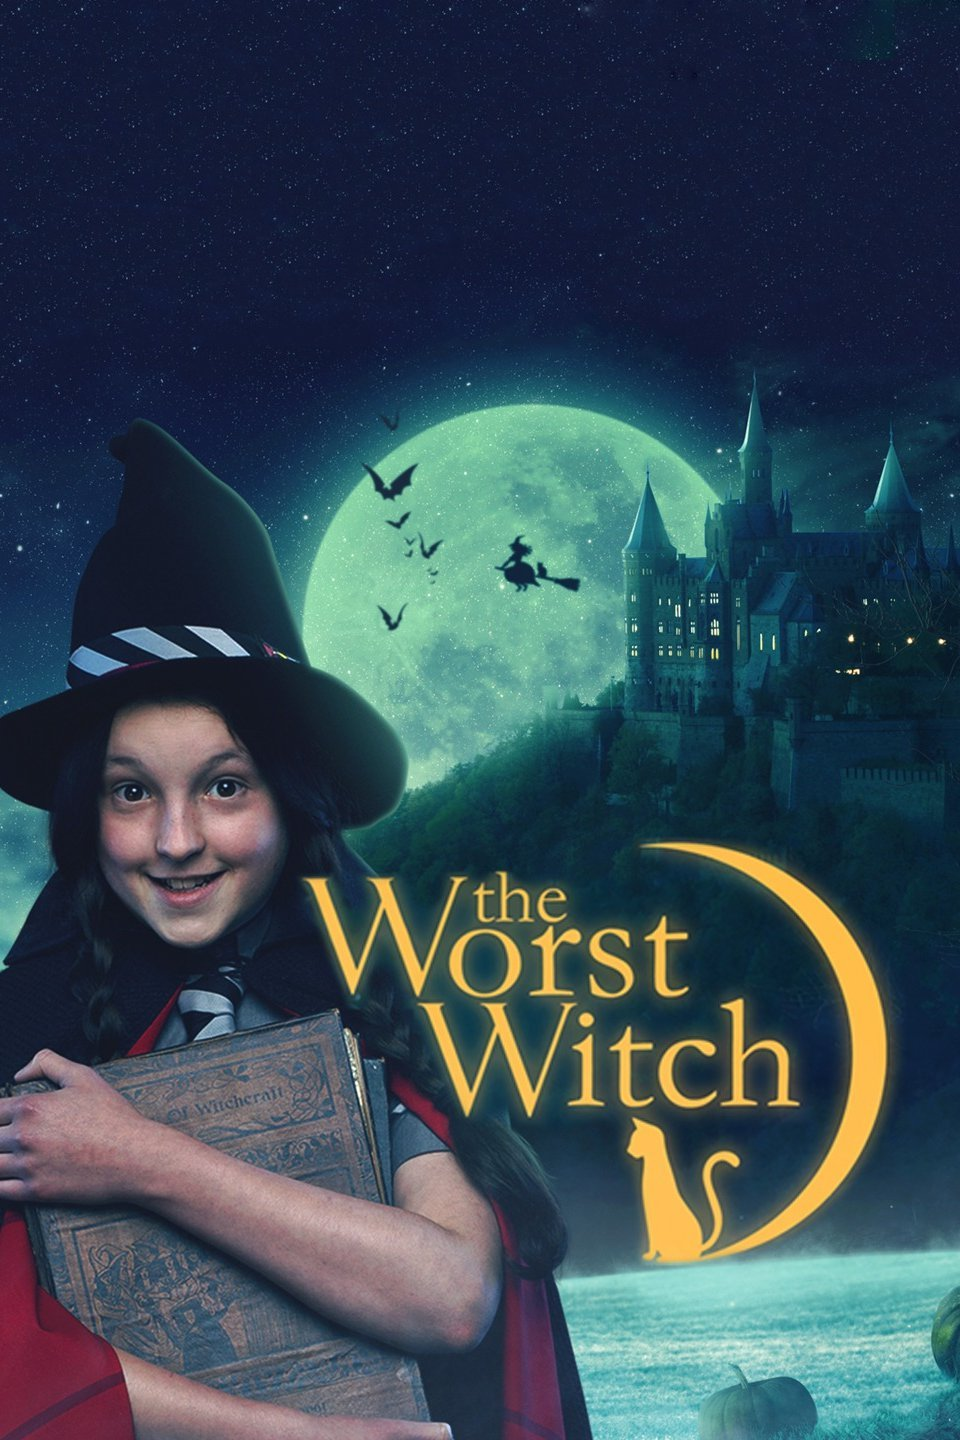 The Worst Witch S01 E01